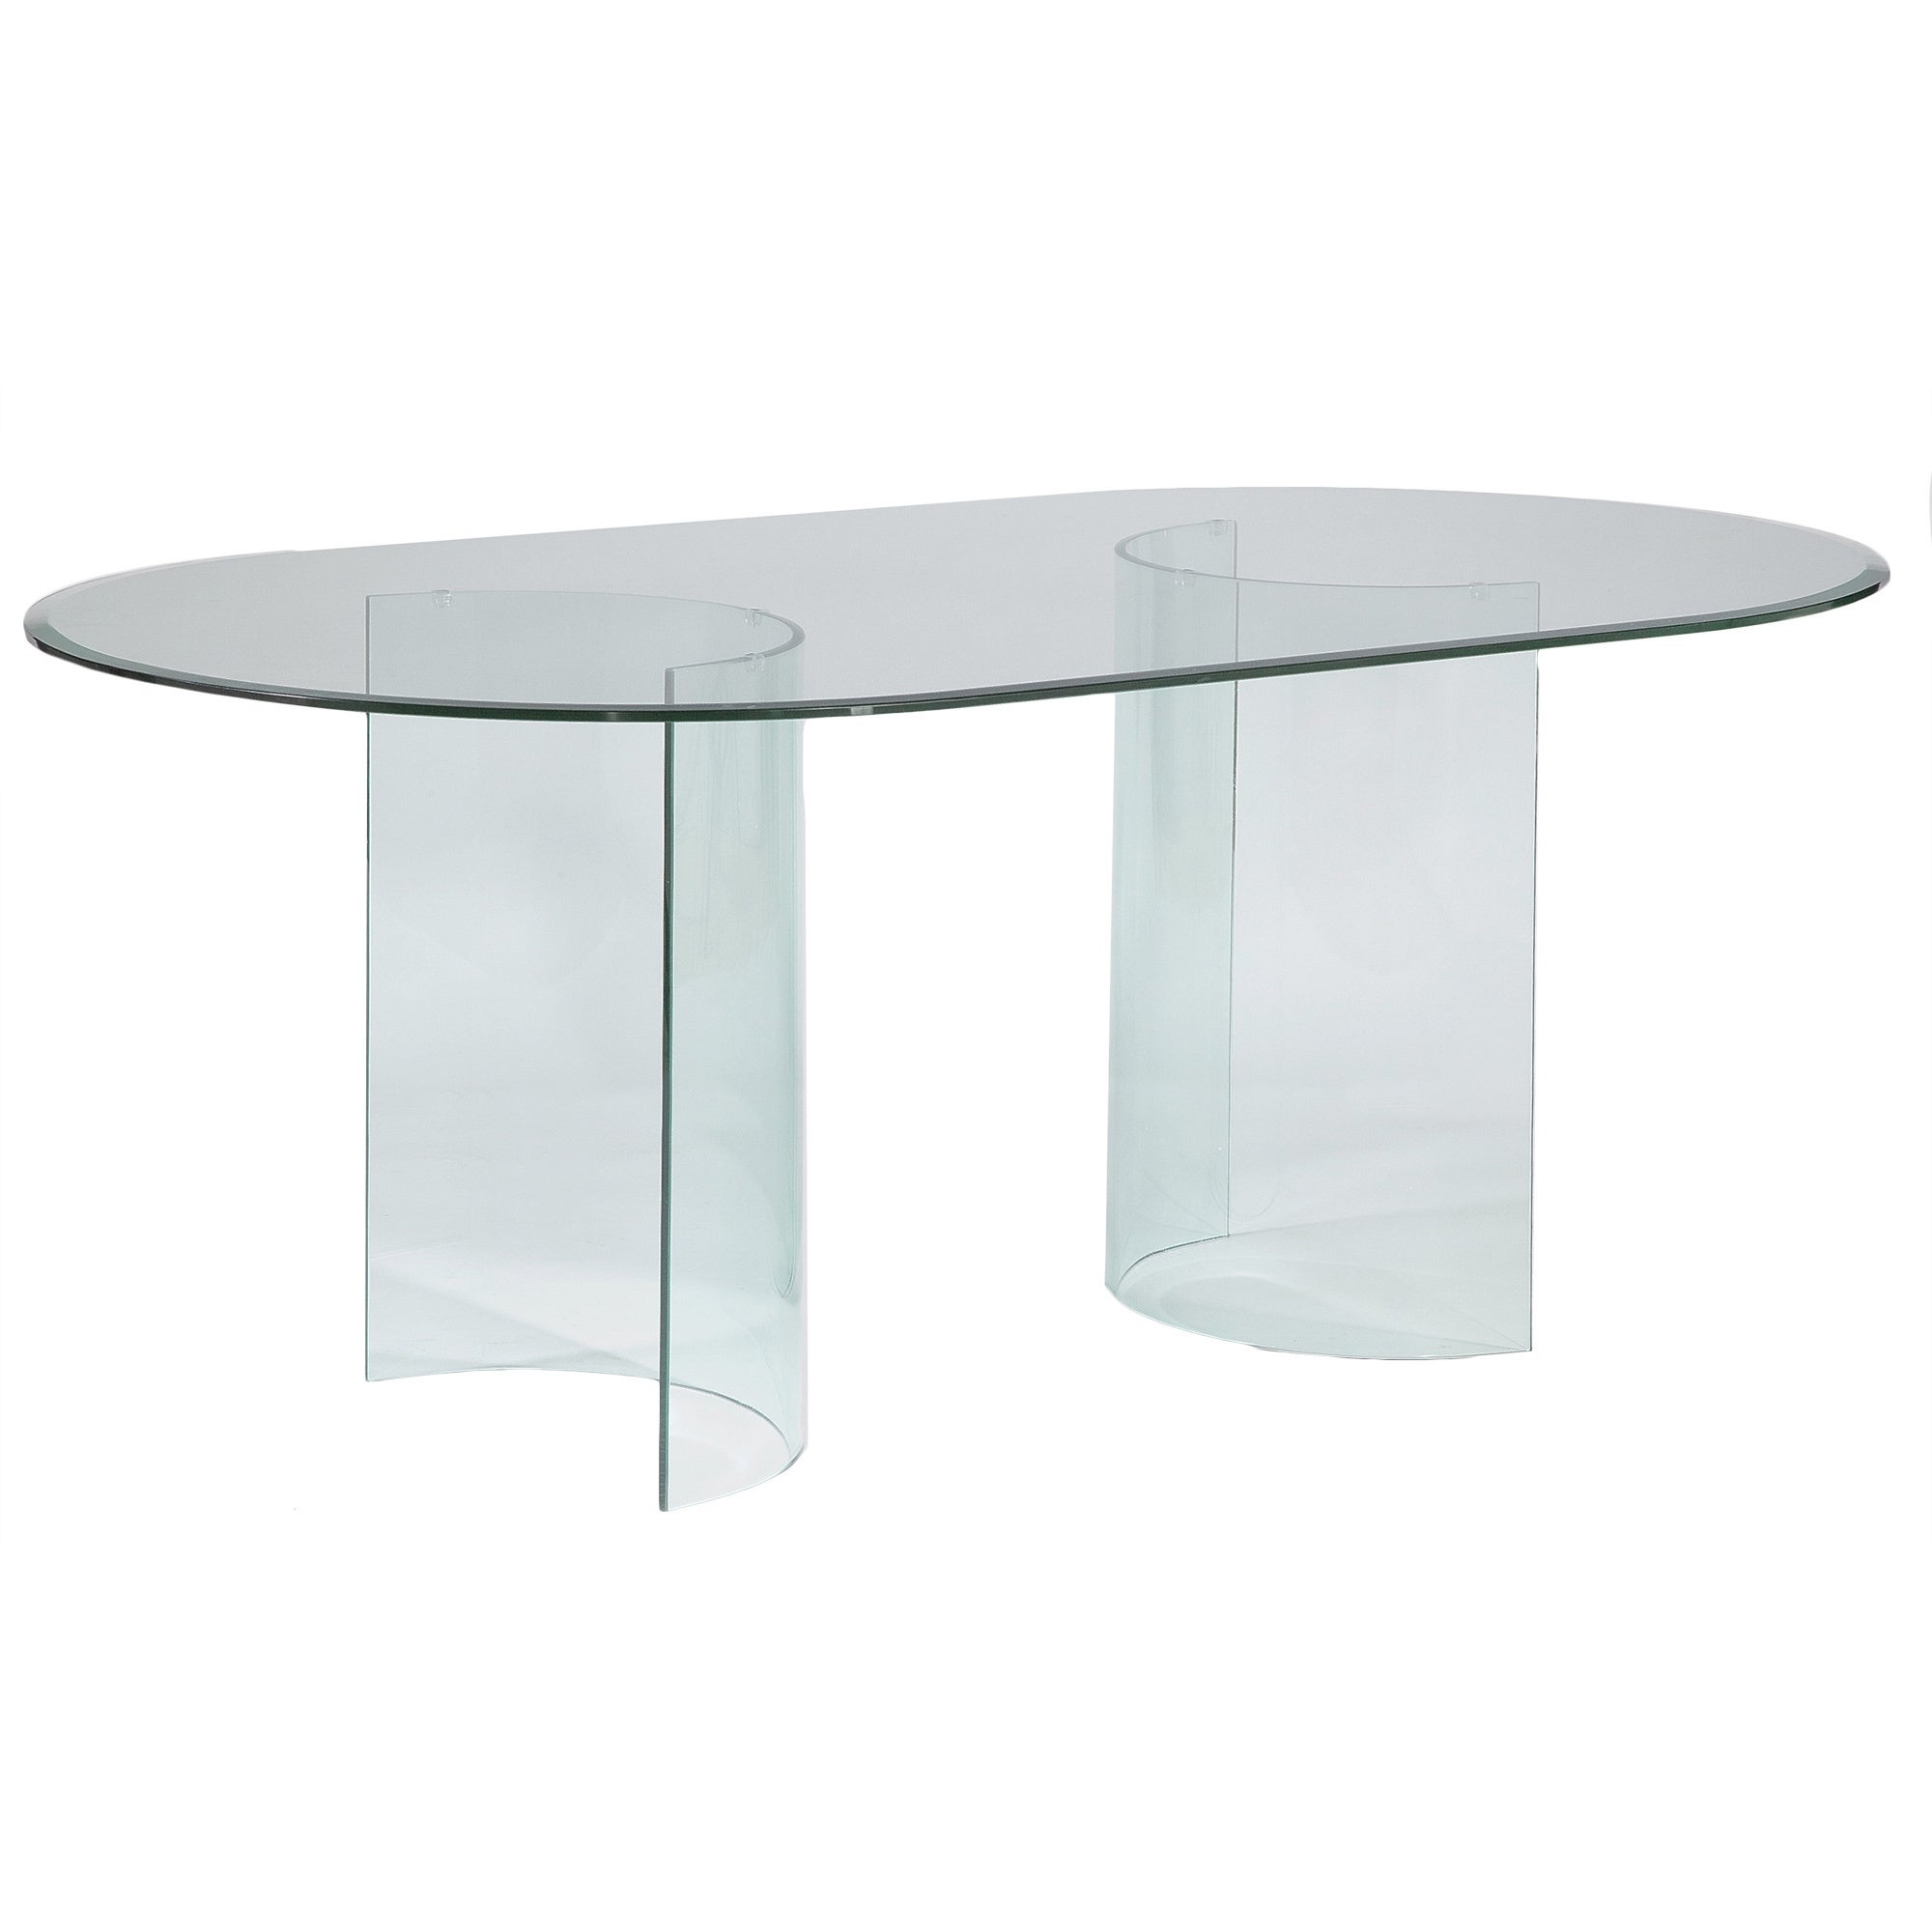 Picture of: Somette Split C Racetrack 72 Inch Oval Glass Dining Table Clear Overstock 9770154